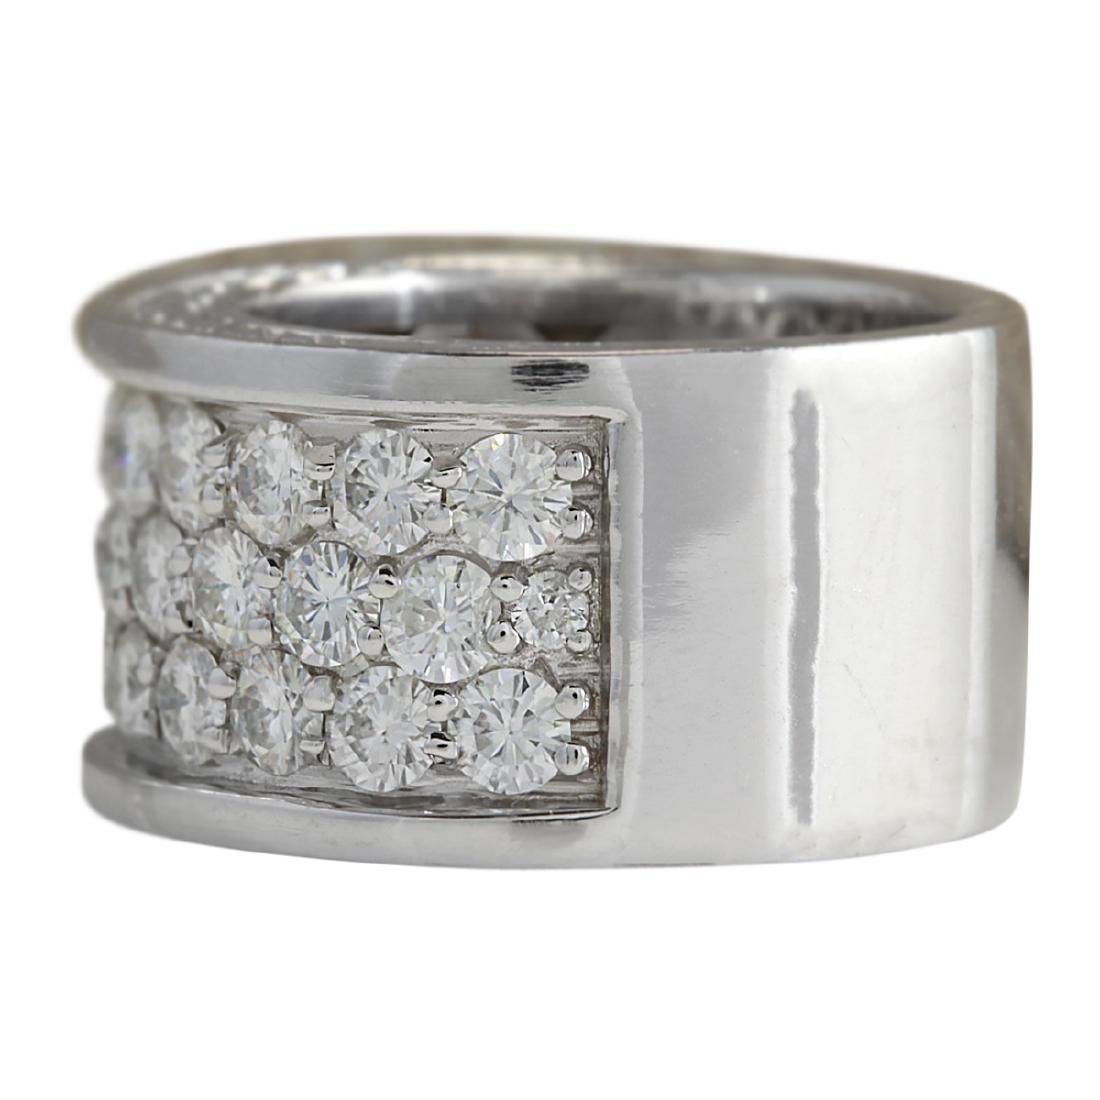 4.20 CTW Natural Diamond Ring In18K Solid White Gold - 2